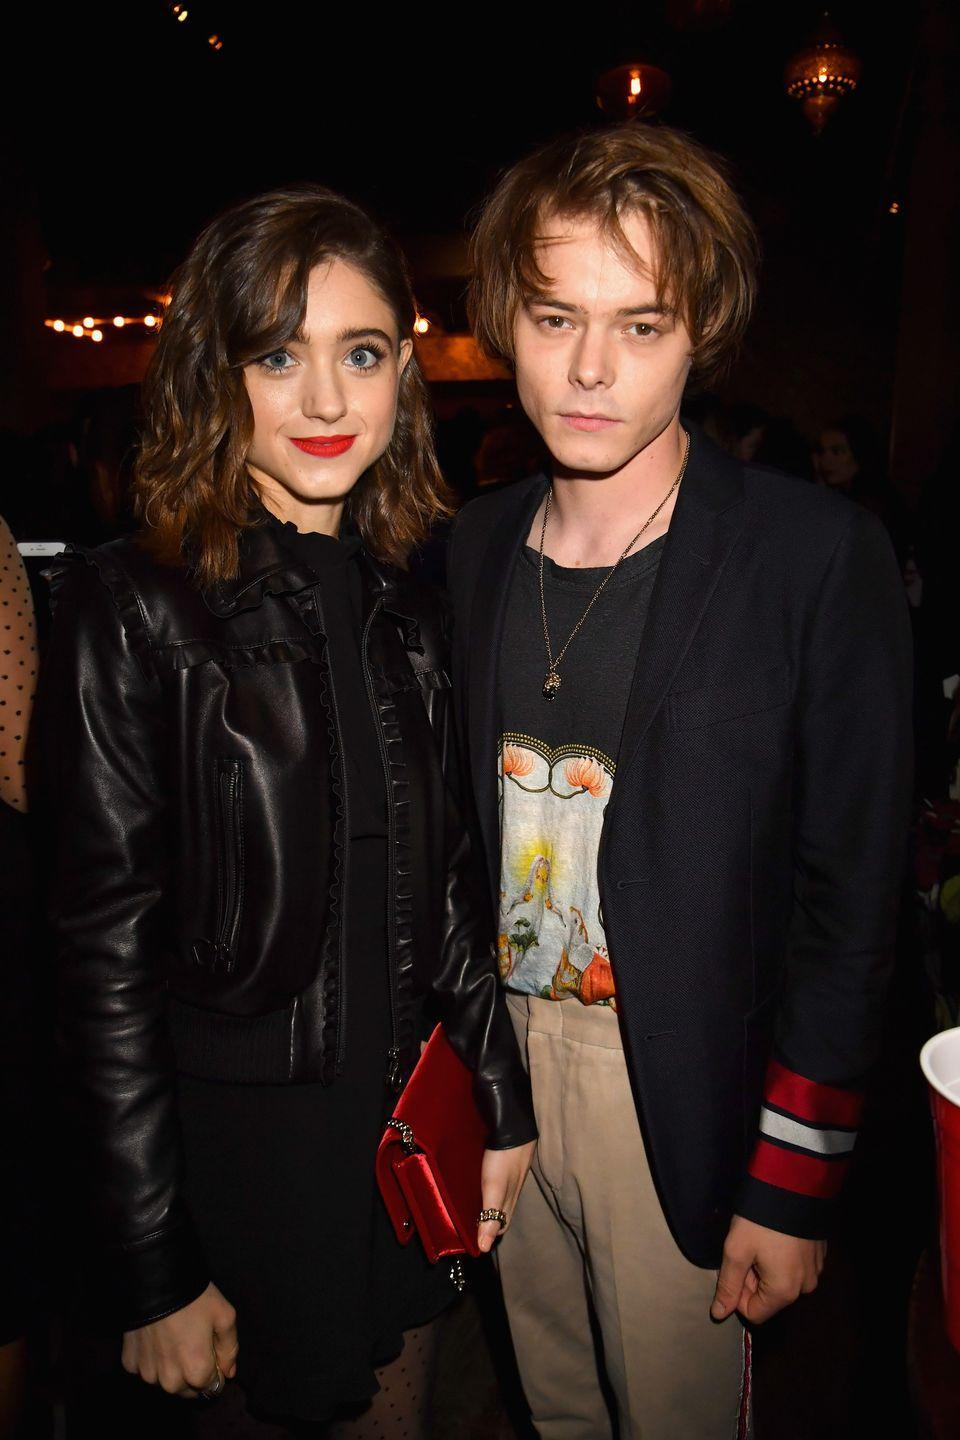 """<p>Natalia Dyer and Charlie Heaton took their Stranger Things romance off screen. The couple rarely divulges personal feelings in interviews, but there are ample photos of them <a href=""""https://www.elle.com/culture/a28069343/charlie-heaton-natalia-dyer-relationship-timeline/"""" rel=""""nofollow noopener"""" target=""""_blank"""" data-ylk=""""slk:putting on the PDA"""" class=""""link rapid-noclick-resp"""">putting on the PDA</a>. 'It's an interesting thing to work with somebody who you go home with,' Natlia told <a href=""""https://www.refinery29.com/en-us/2019/07/236305/natalia-dyer-stranger-things-season-3-nancy-wheeler-interview"""" rel=""""nofollow noopener"""" target=""""_blank"""" data-ylk=""""slk:Refinery29"""" class=""""link rapid-noclick-resp"""">Refinery29</a>. 'It's always really fun. We're really comfortable with each other, so we can play and feel more free, and we can talk about it before.'</p>"""